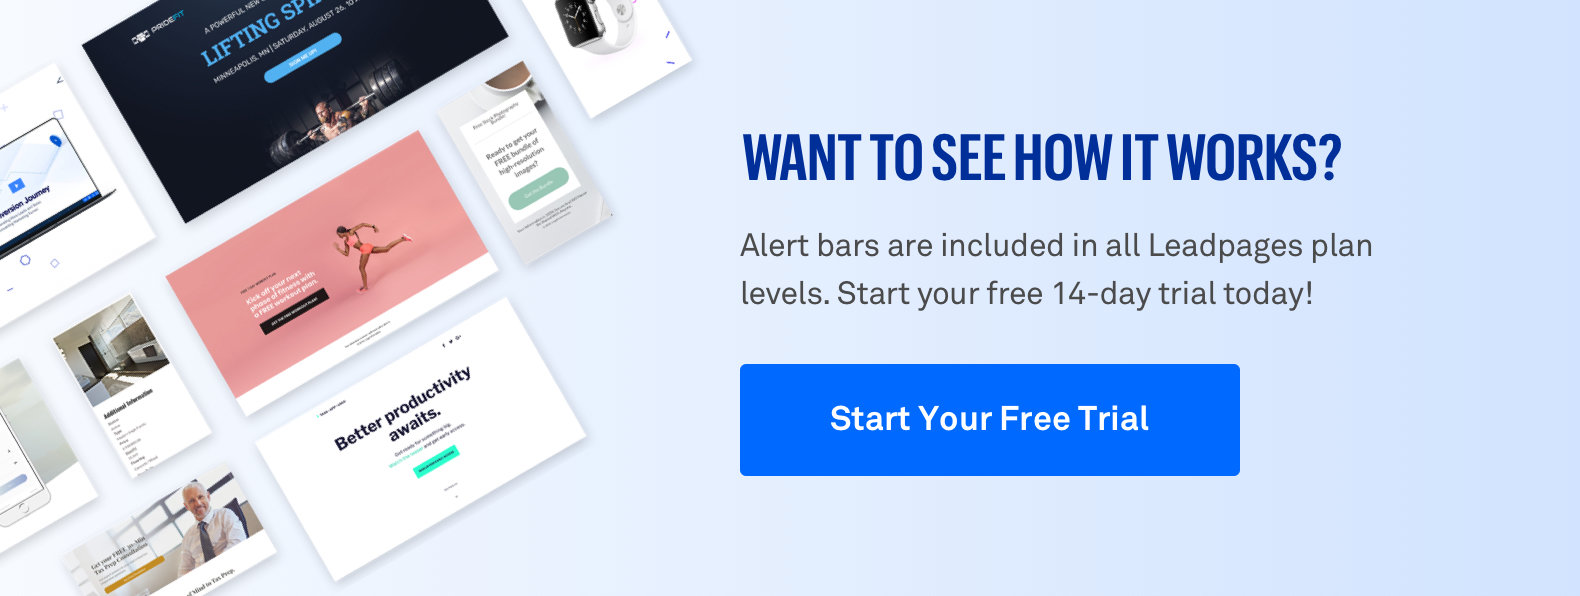 Want to see how it works? Alert bars are included in all Leadpages plan levels. Start your free 14-day trial today!